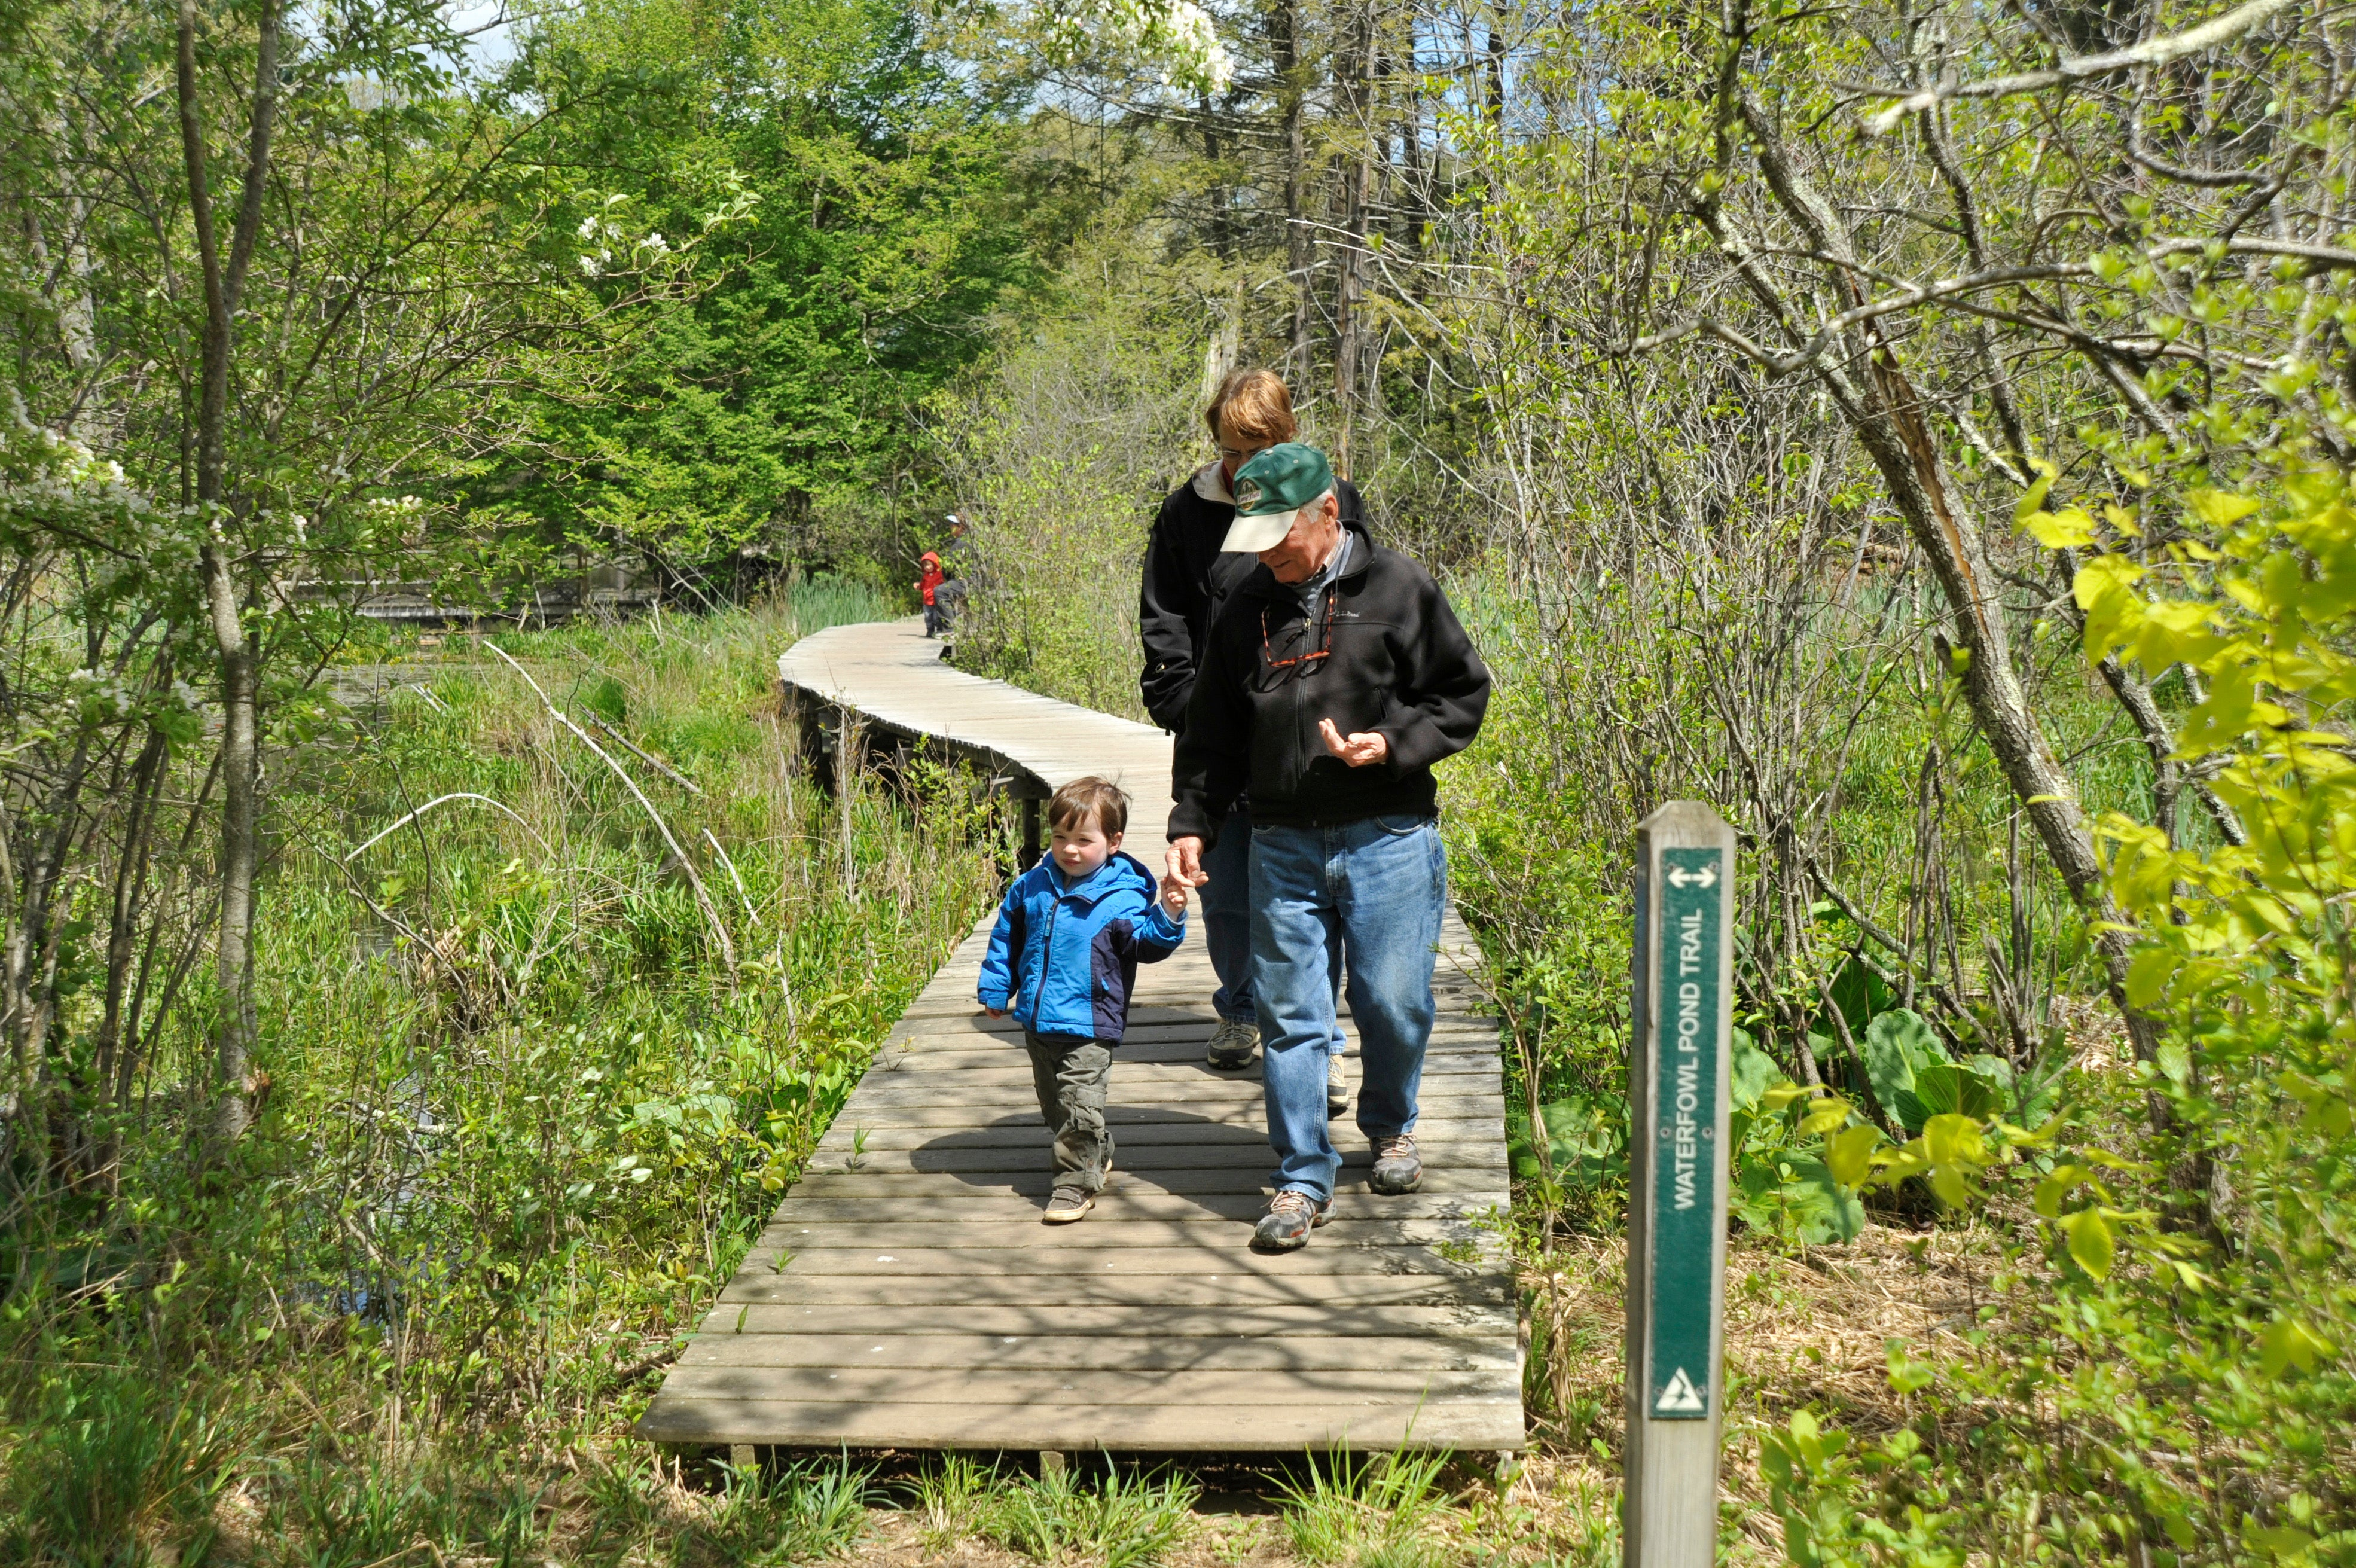 Liam Graham, 2, walks across a boardwalk with his grandparents Bill and Amy Graham at the Ipswich River Wildlife Sanctuary.